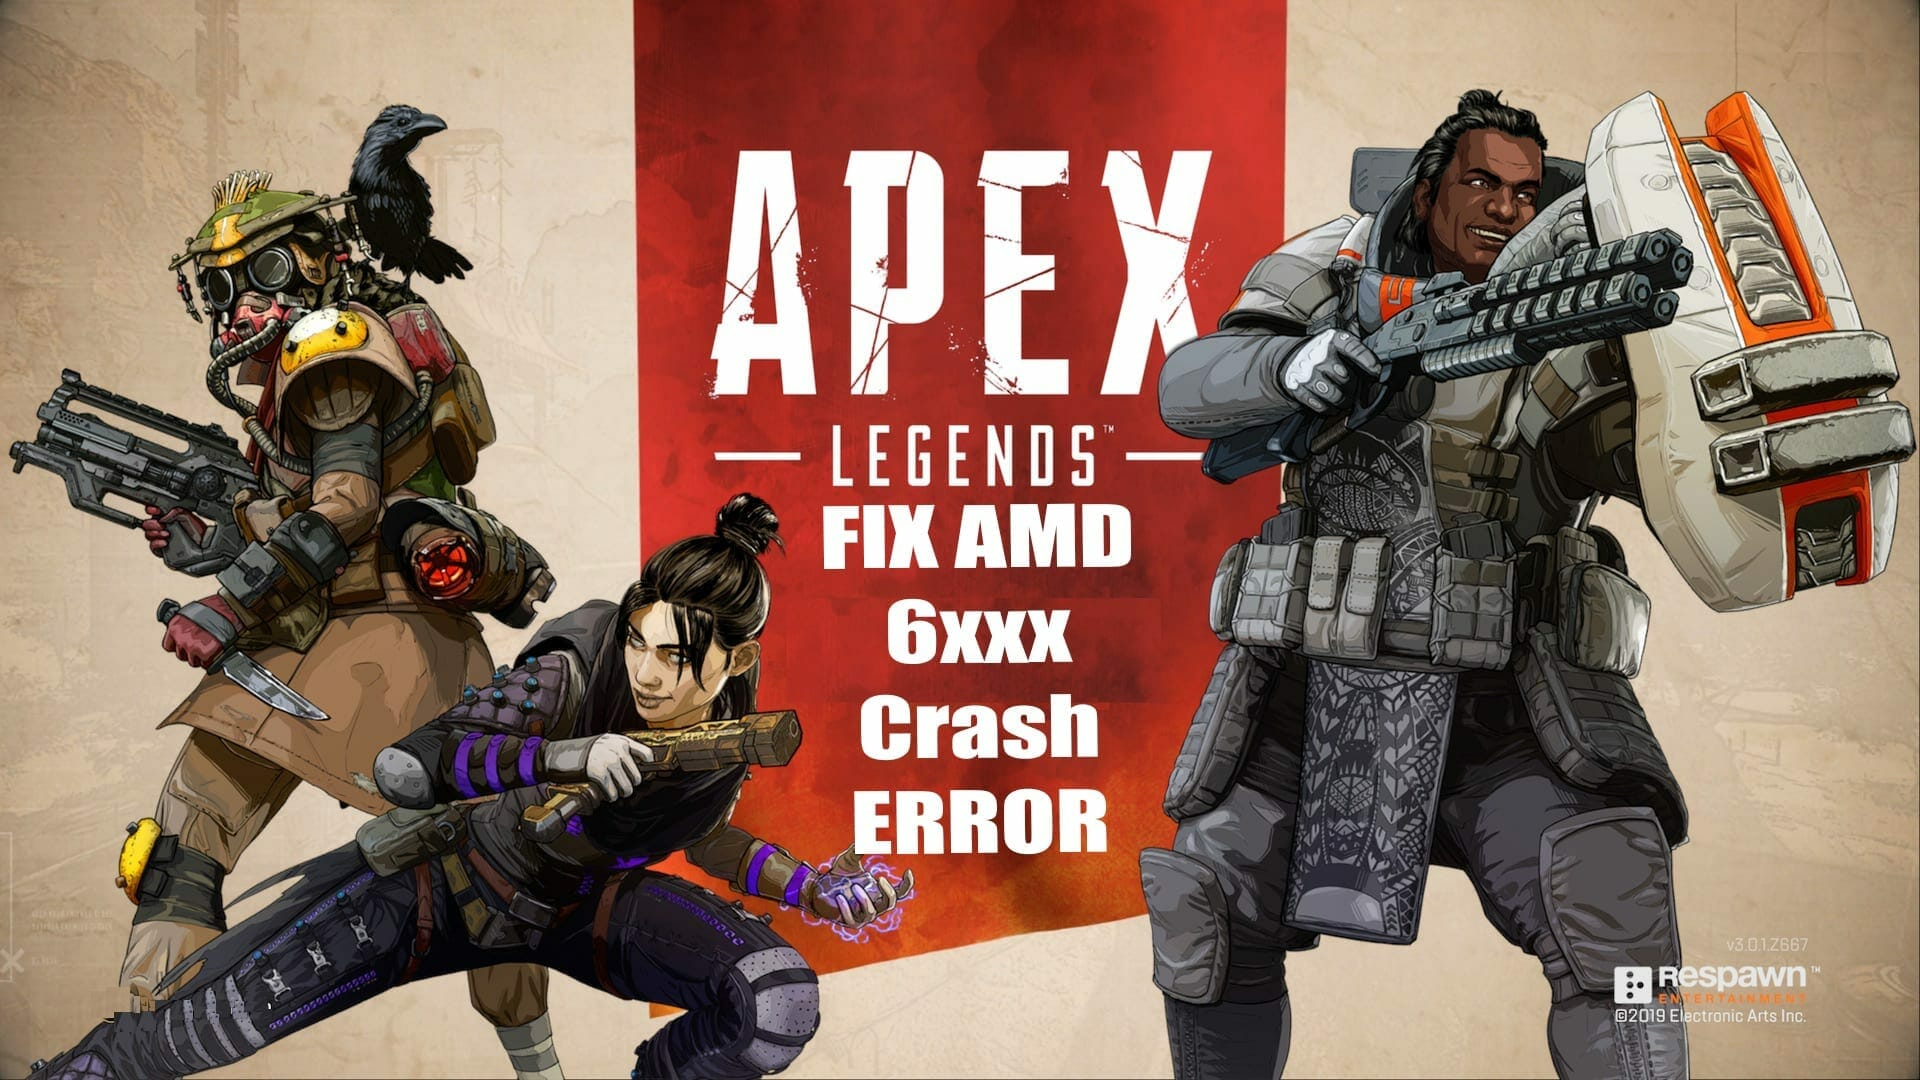 Apex Legends hits 25 million players in a week - smashing Fortnite's record